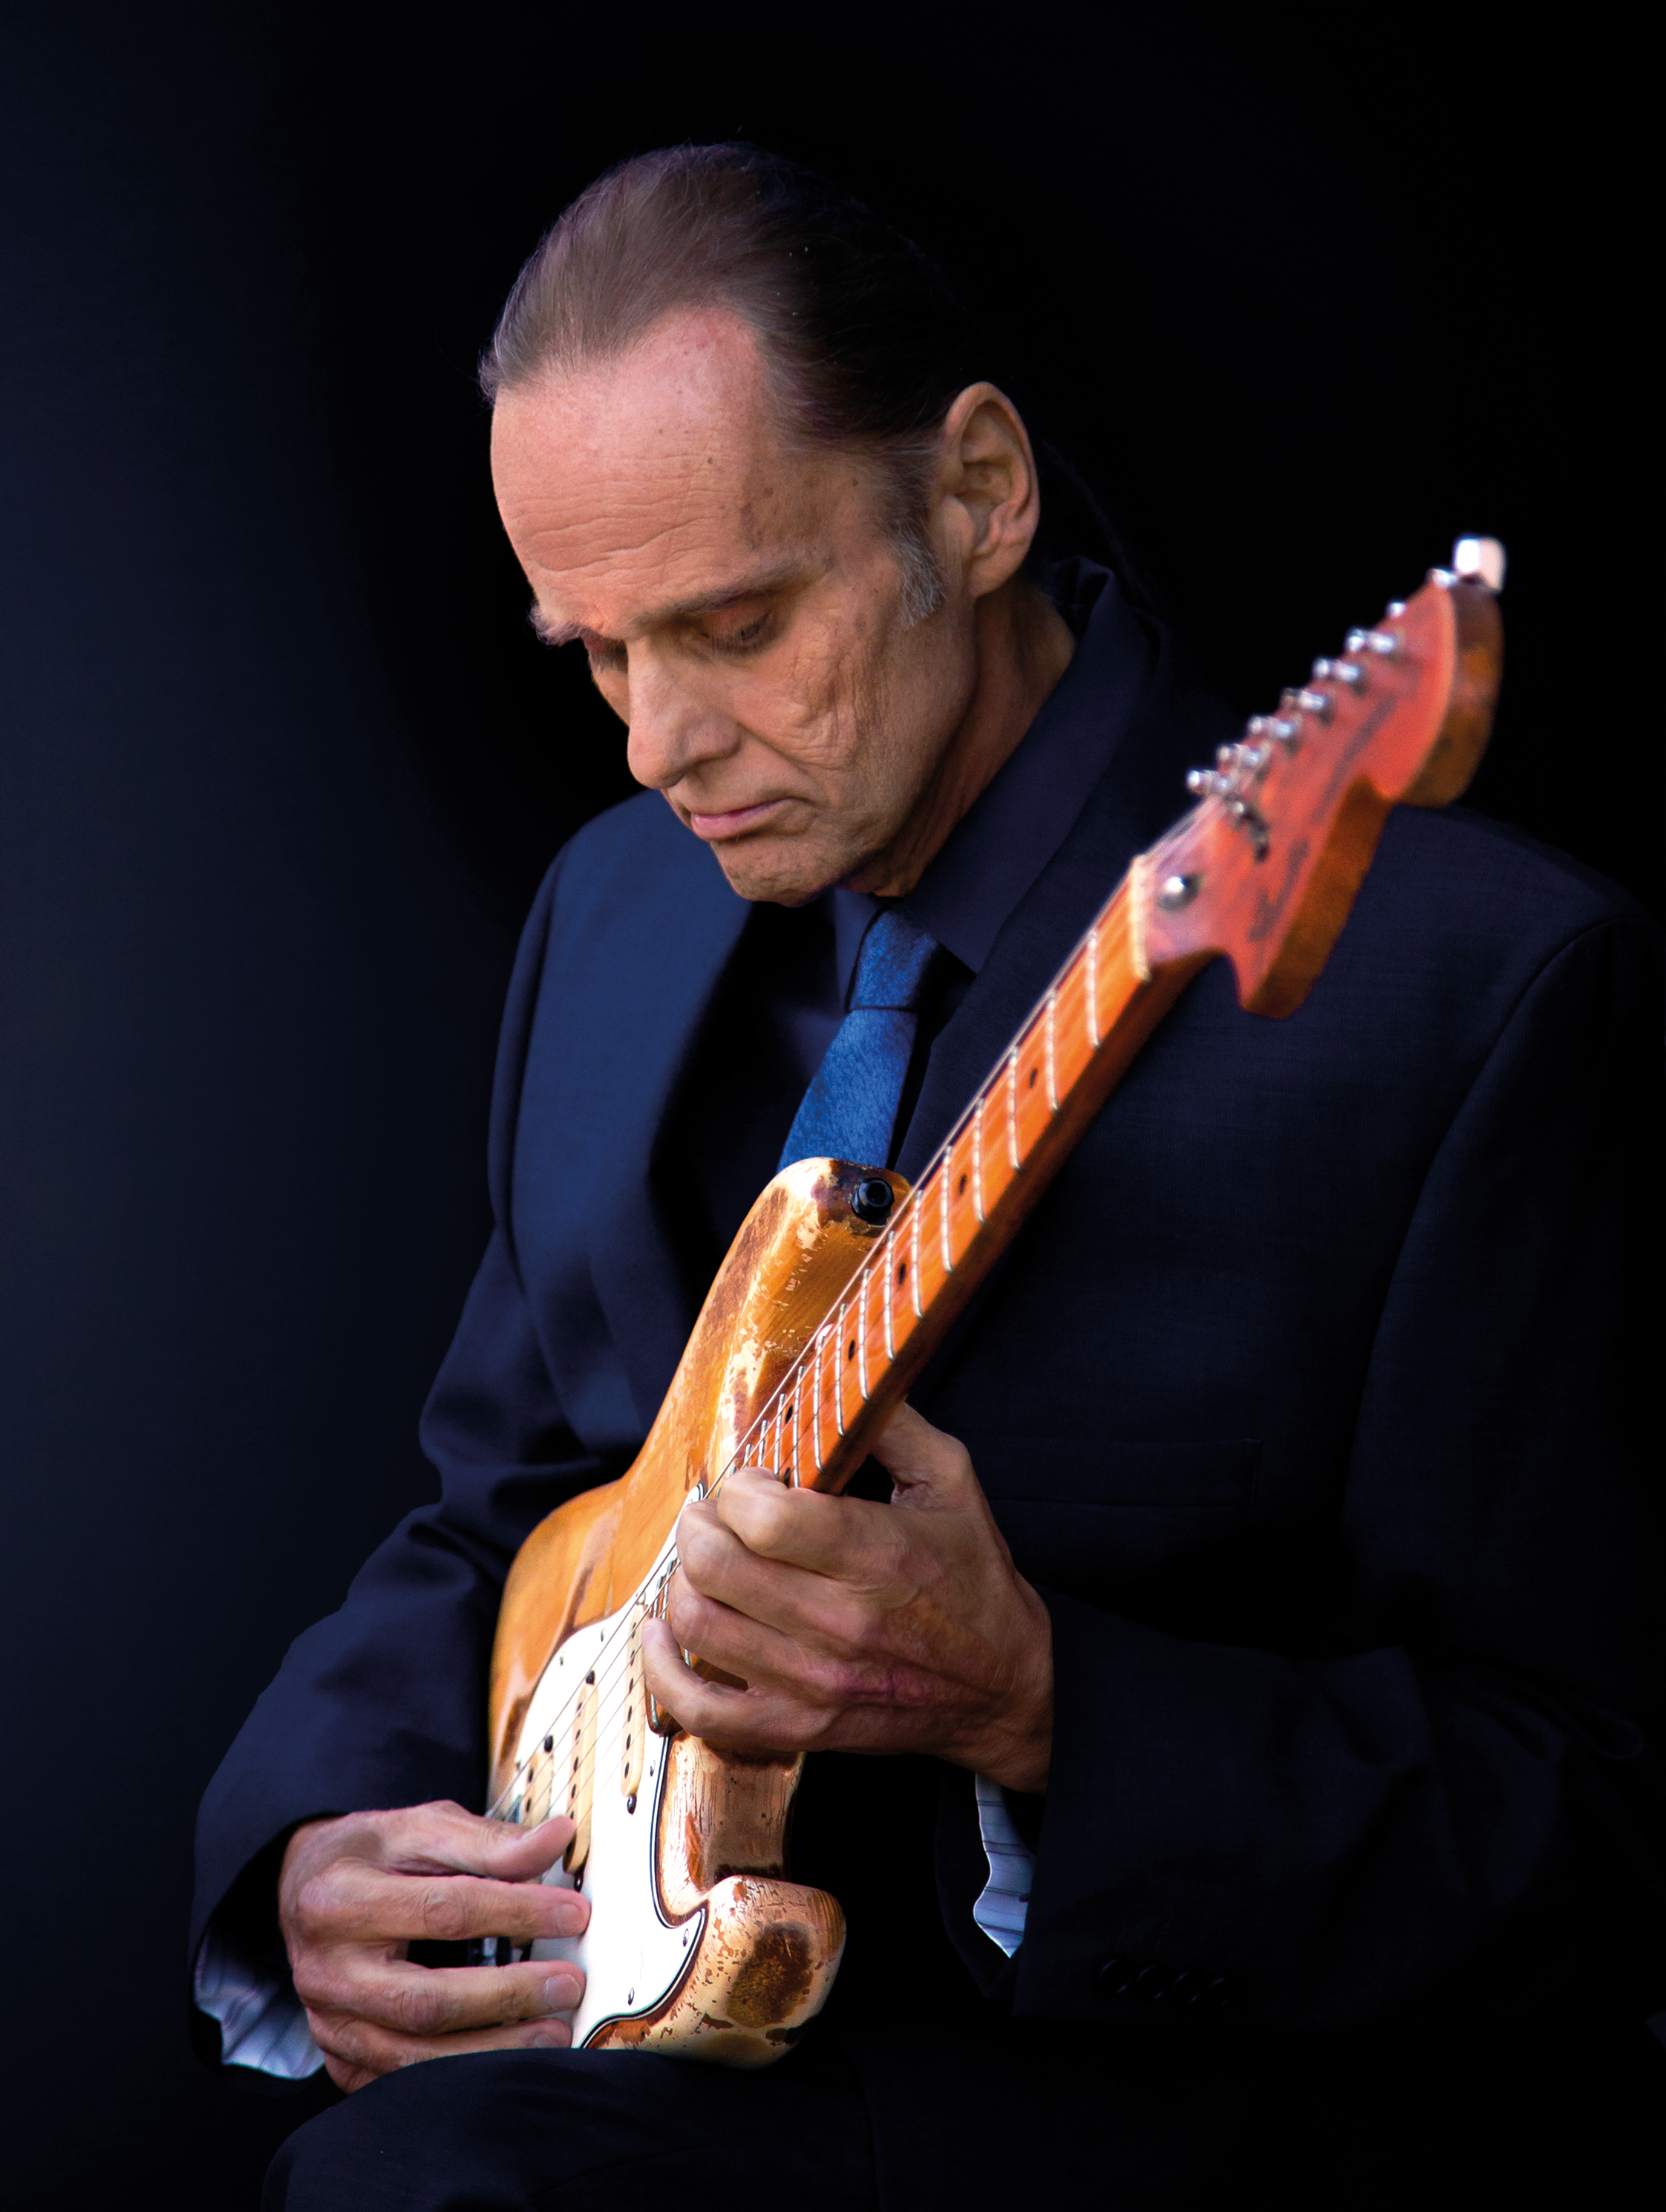 Walter Trout 02 by Jeff Katzedited